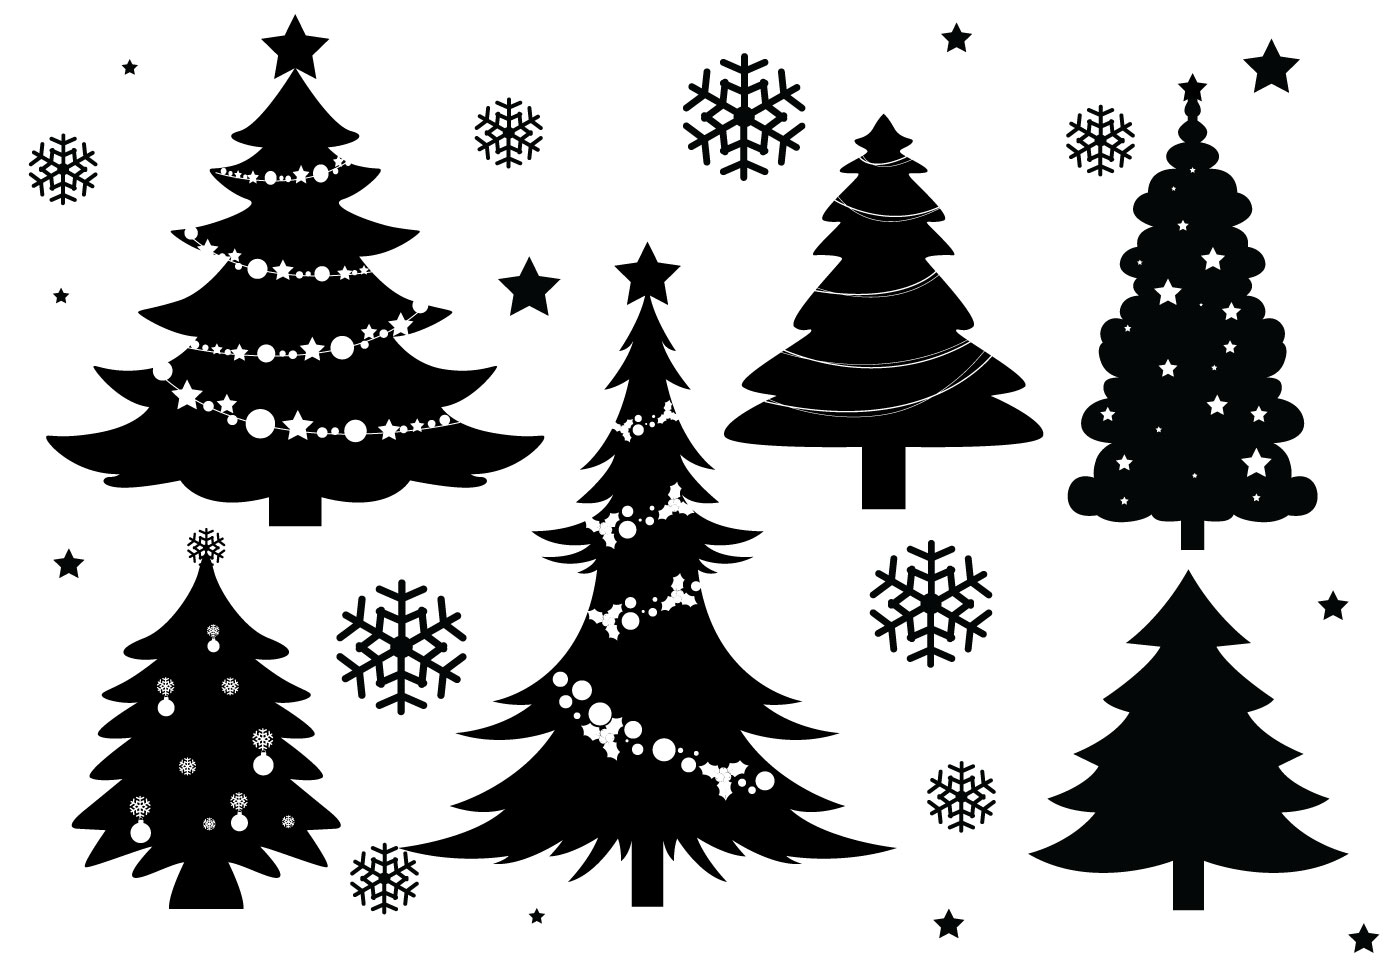 Christmas Tree Silhouette Free Vector Art.